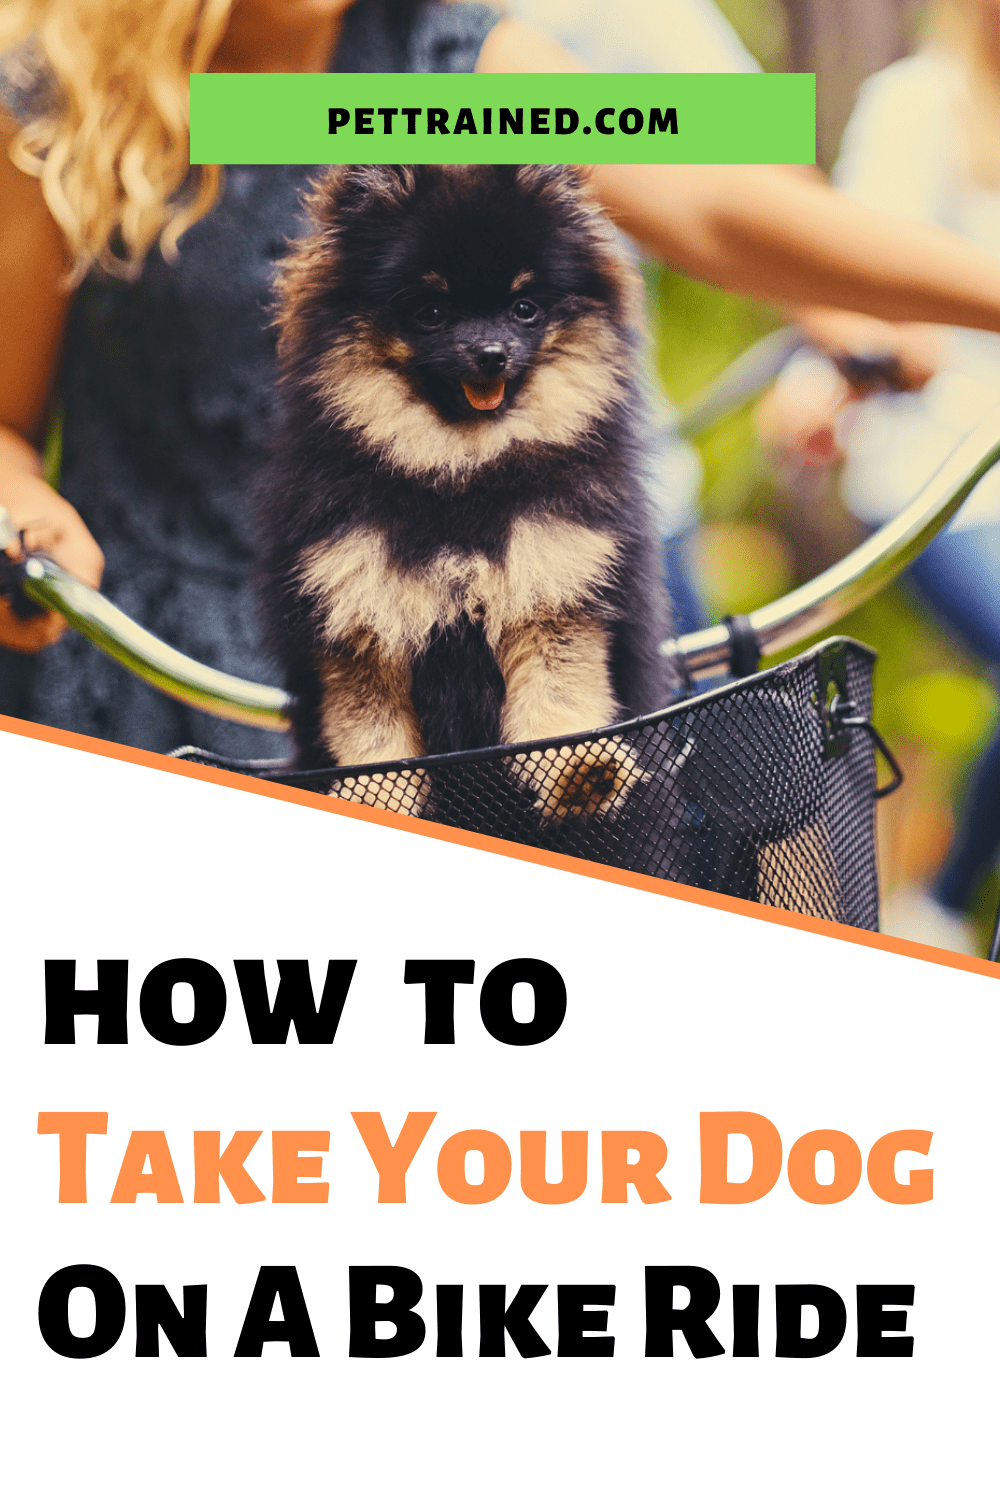 How to train your dog to bike with you for fun